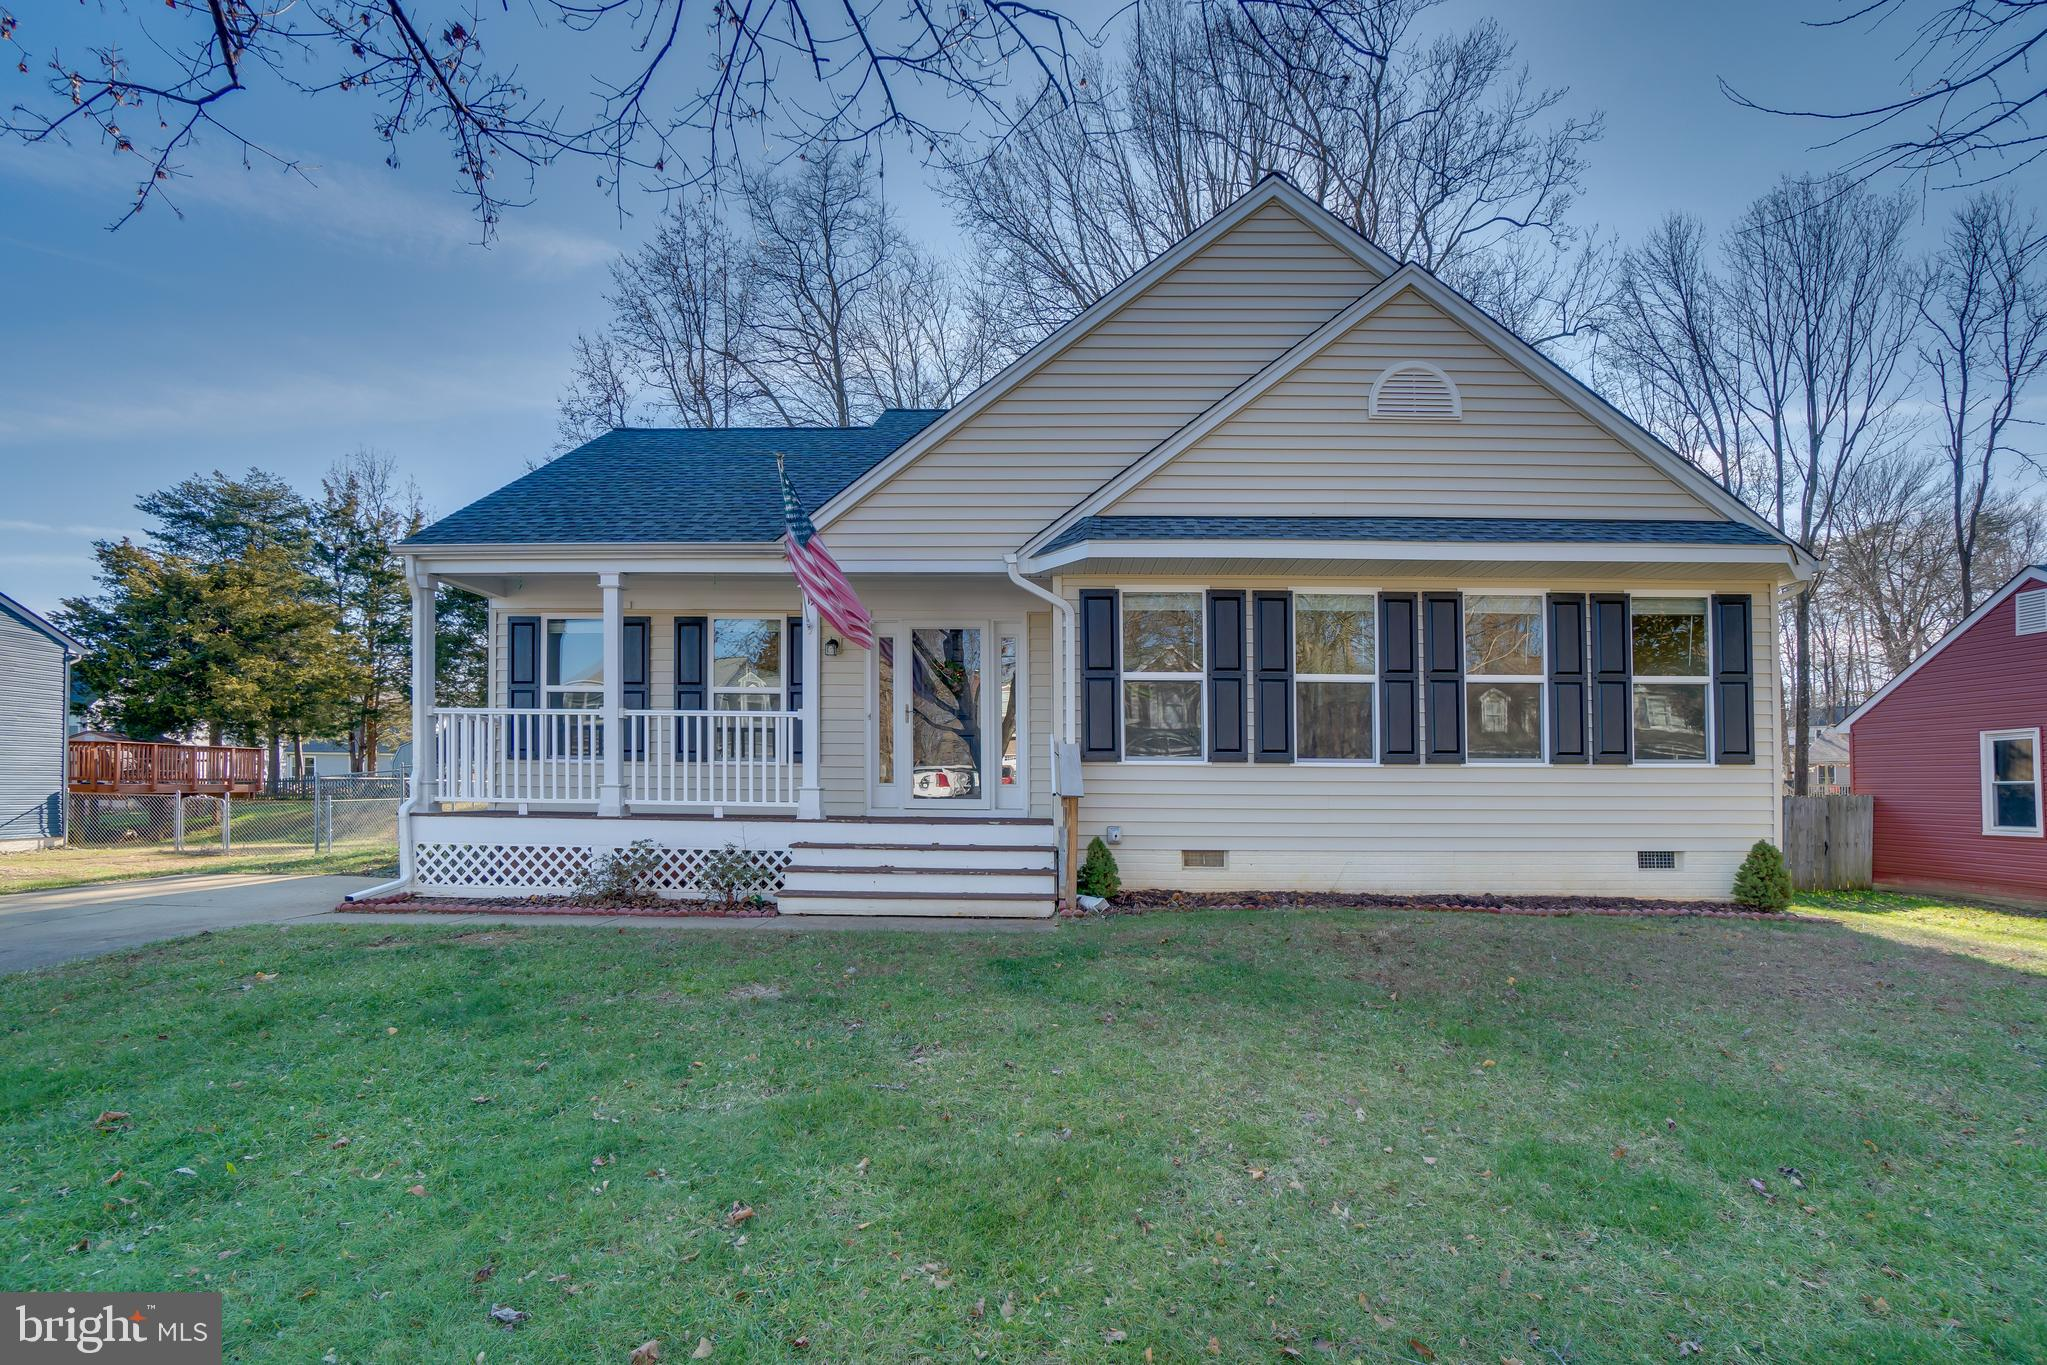 Beautifully maintained one level home in Stafford! Roof, siding windows, trim, and gutters all in 20